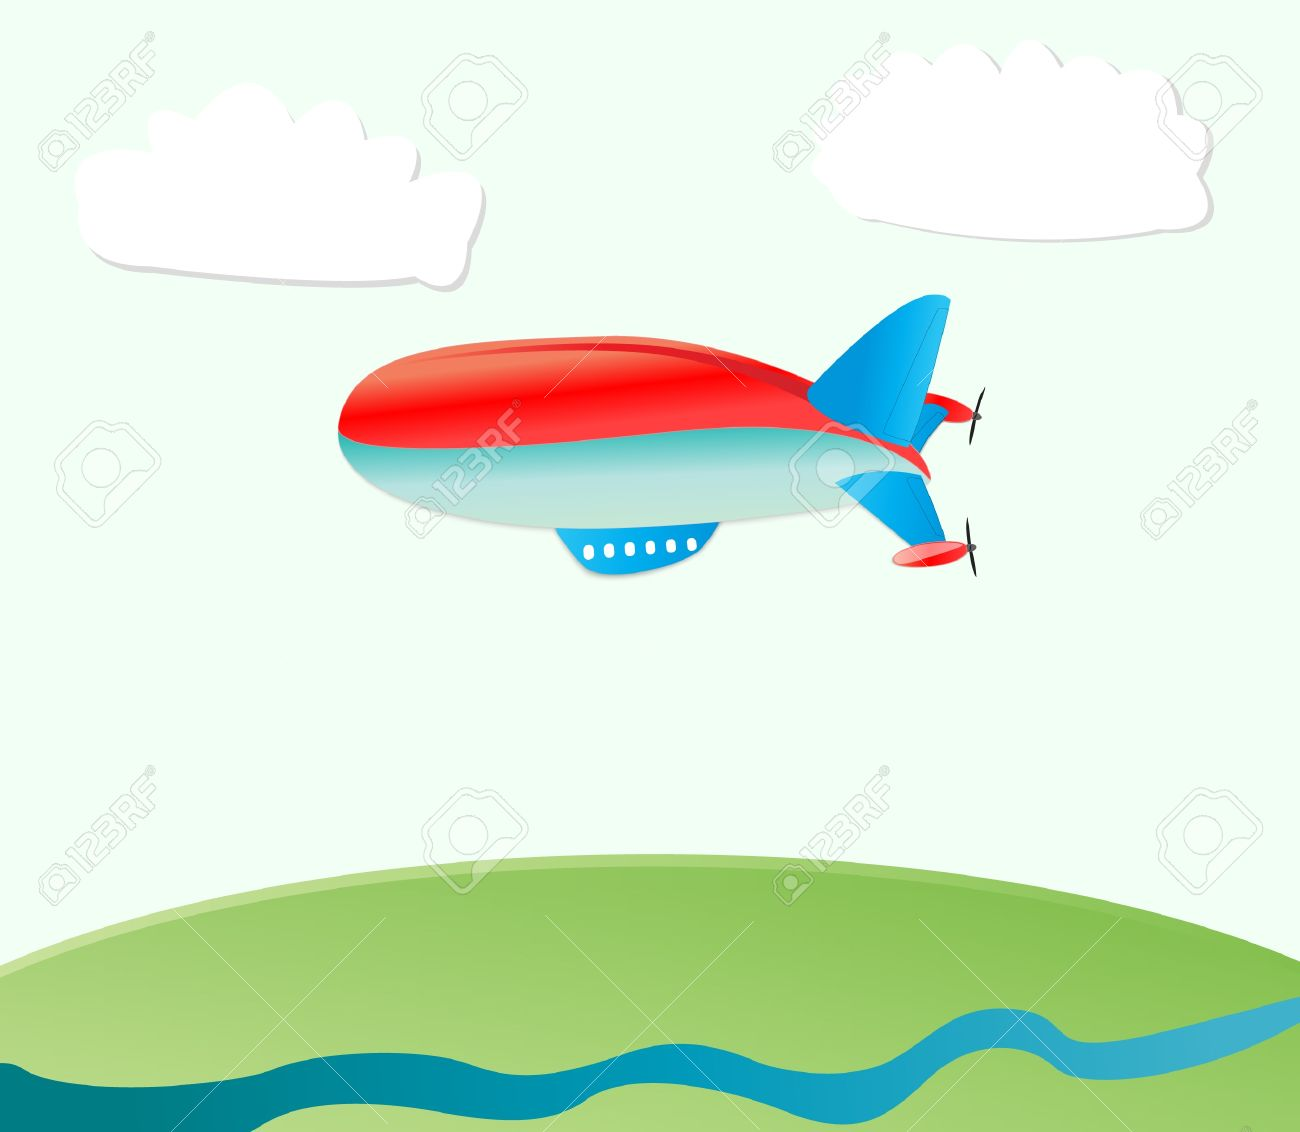 airship nature background Stock Vector - 9023062